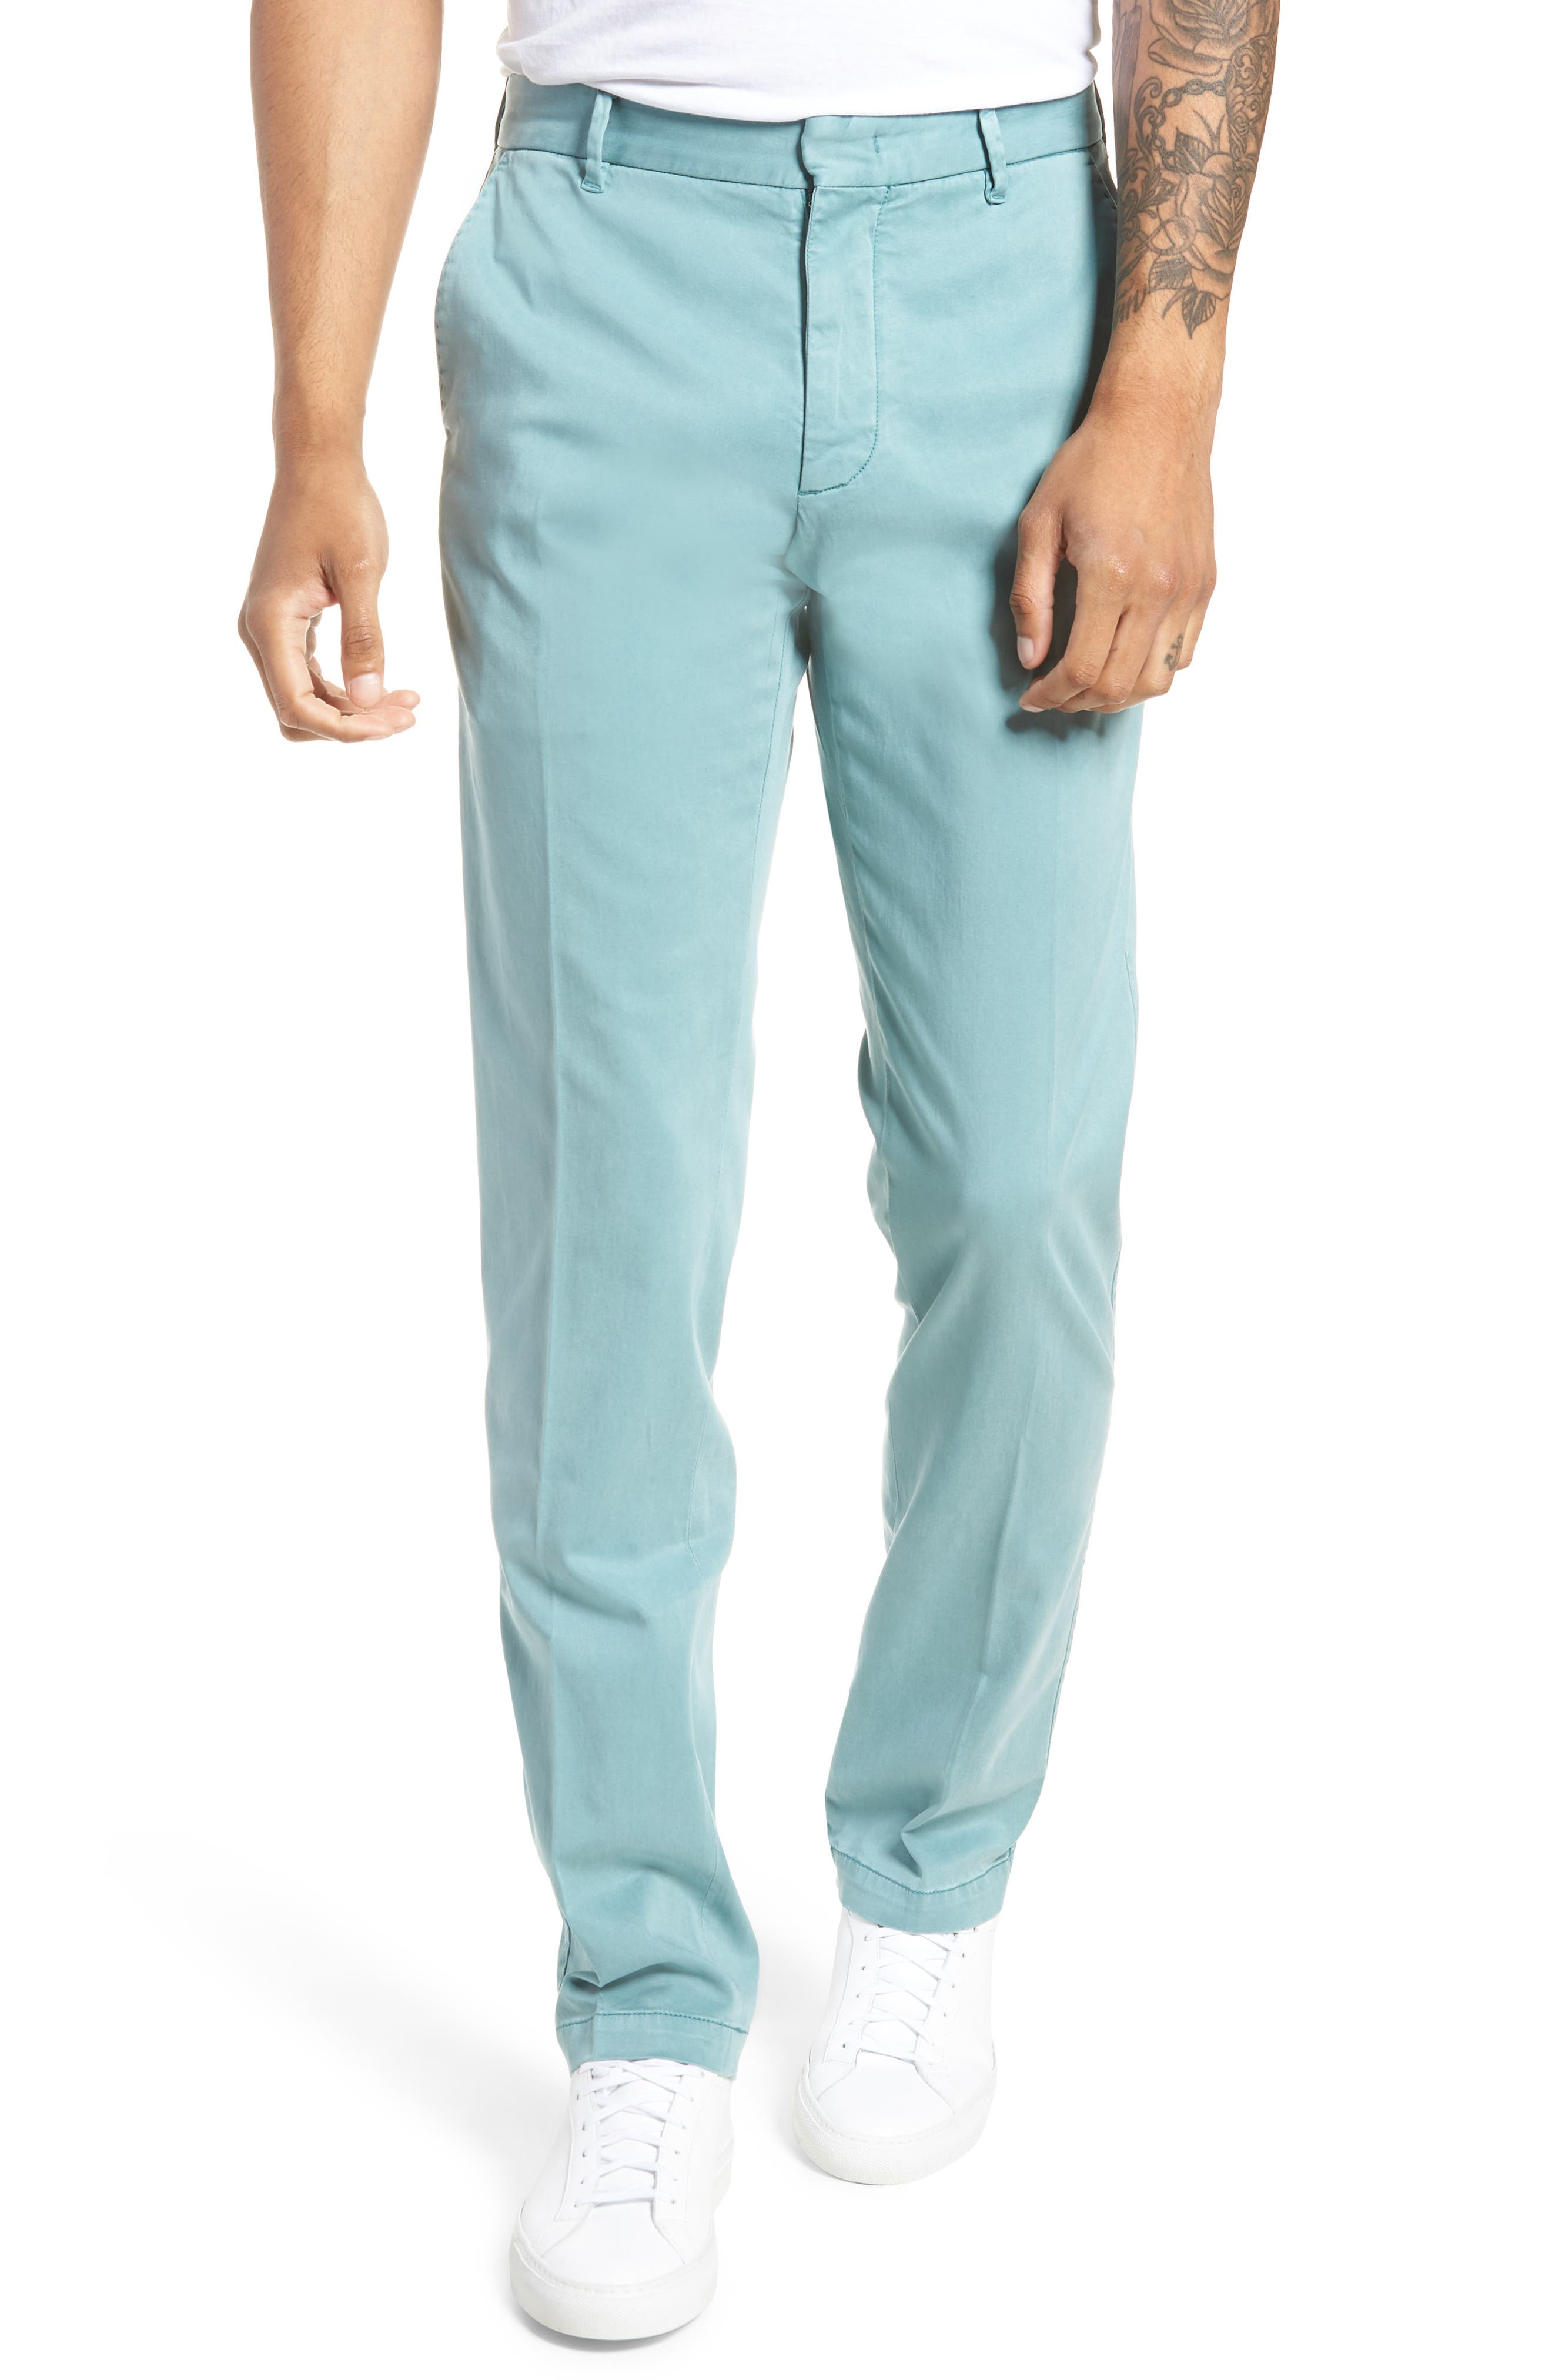 ZACHARY PRELL, Aster Straight Fit Pants, Main thumbnail 1, color, TEAL